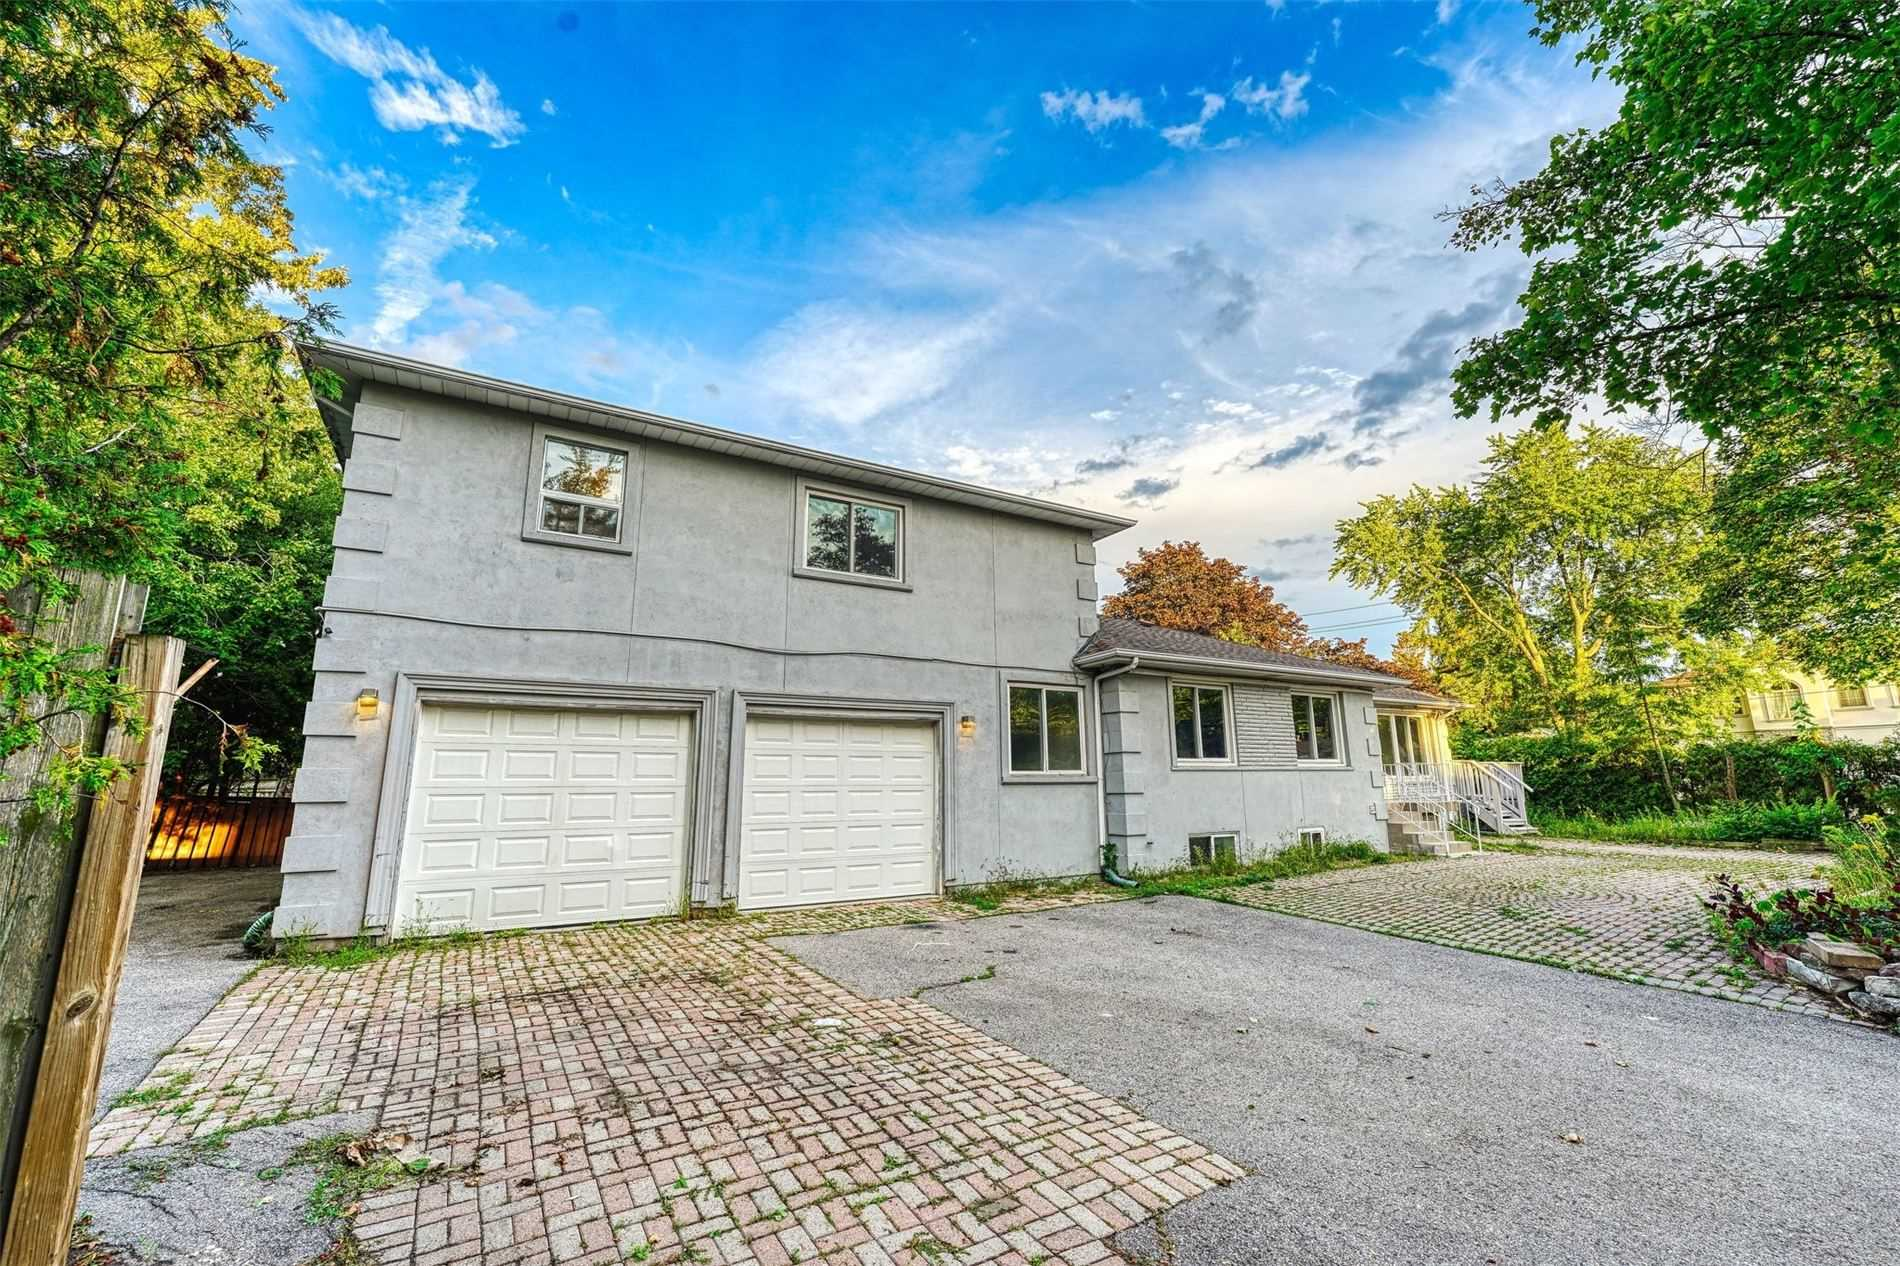 Detached house For Lease In Toronto - 144 Goulding Ave, Toronto, Ontario, Canada M2M1L6 , 2 Bedrooms Bedrooms, ,1 BathroomBathrooms,Detached,For Lease,Bsmt,Goulding